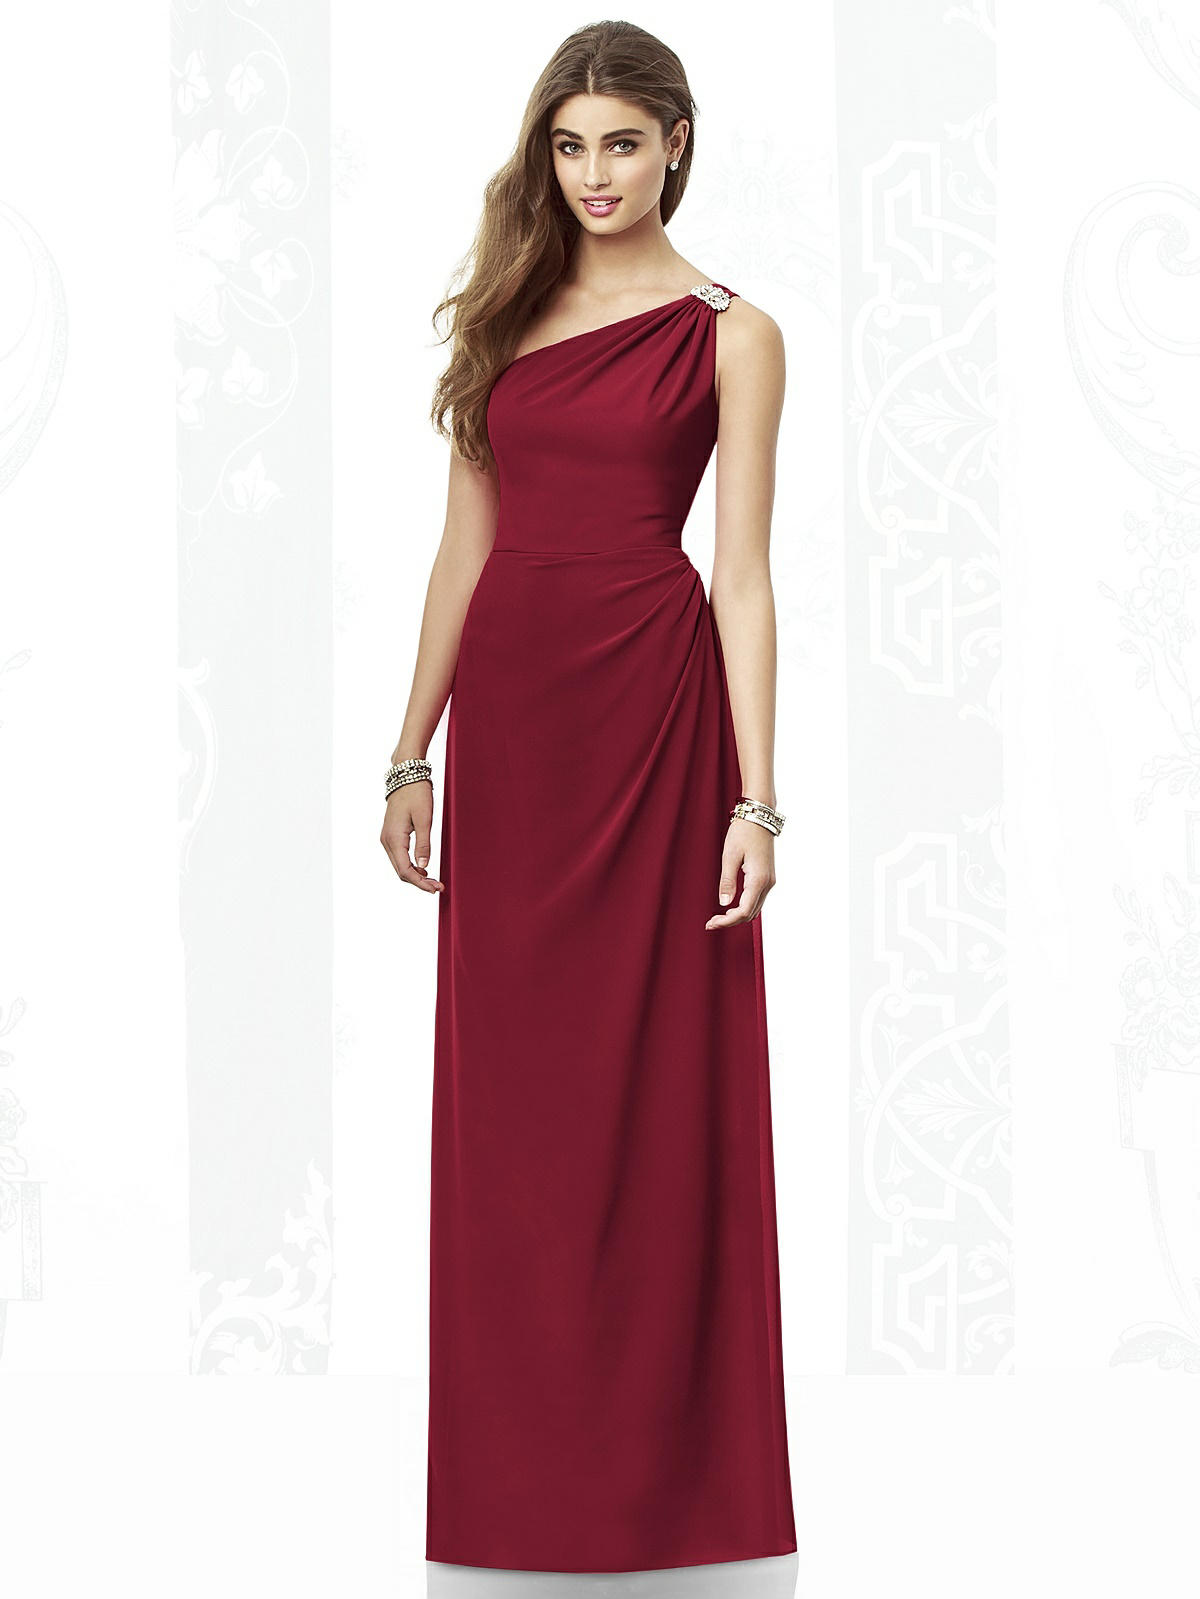 Dessy group bridesmaid dresses size chart dessy group bridesmaid dresses size chart 84 ombrellifo Gallery